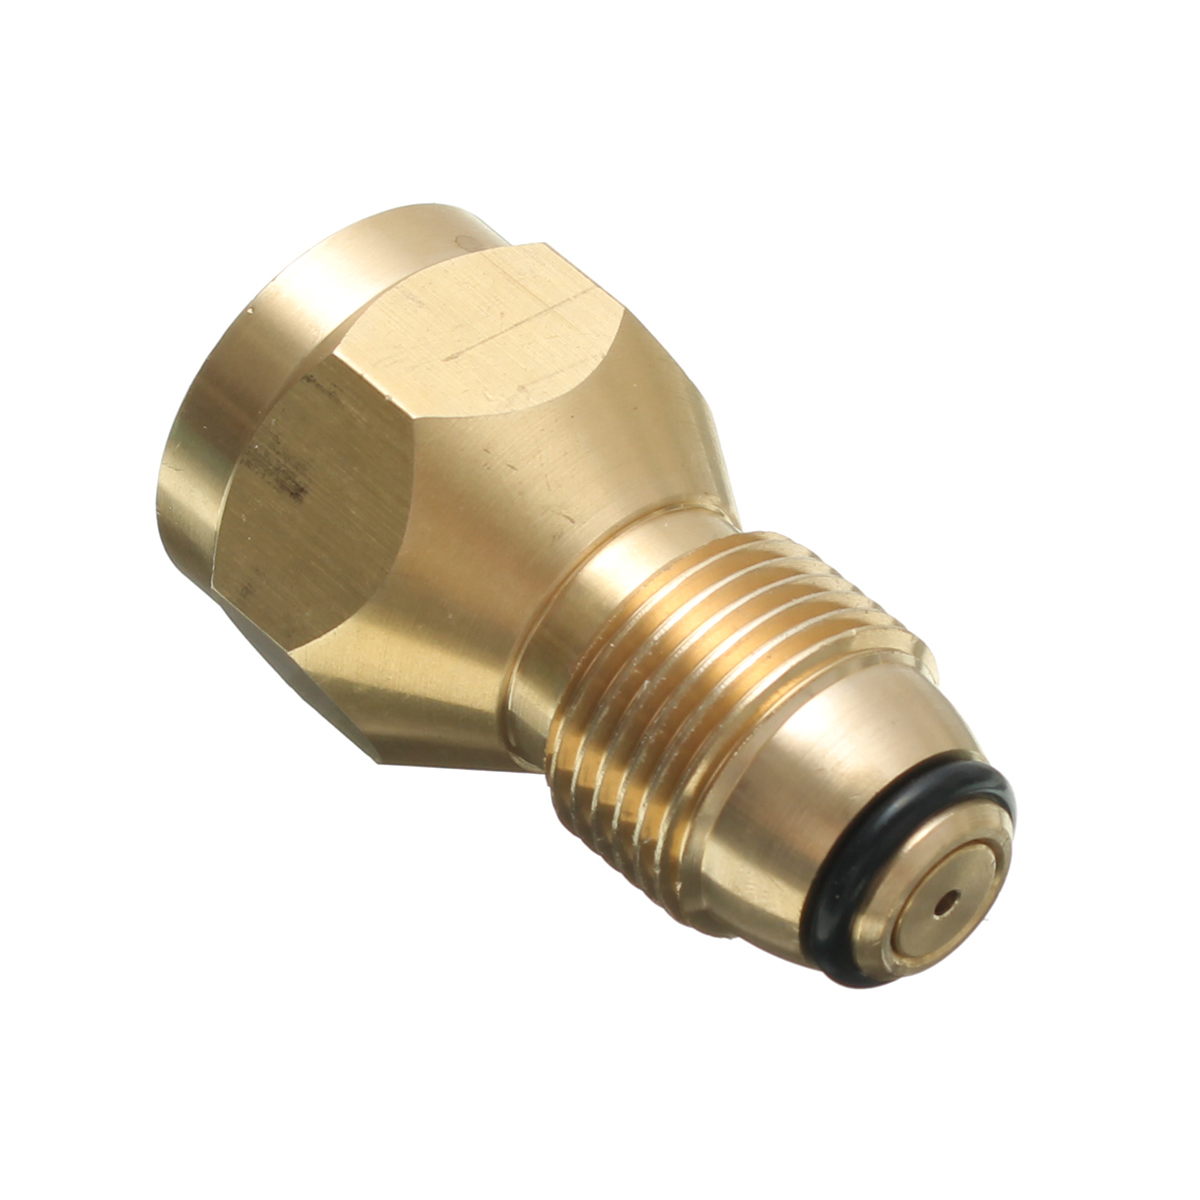 60mm Brass Propane LP Gas Cylinder Fitting Connector Adapter